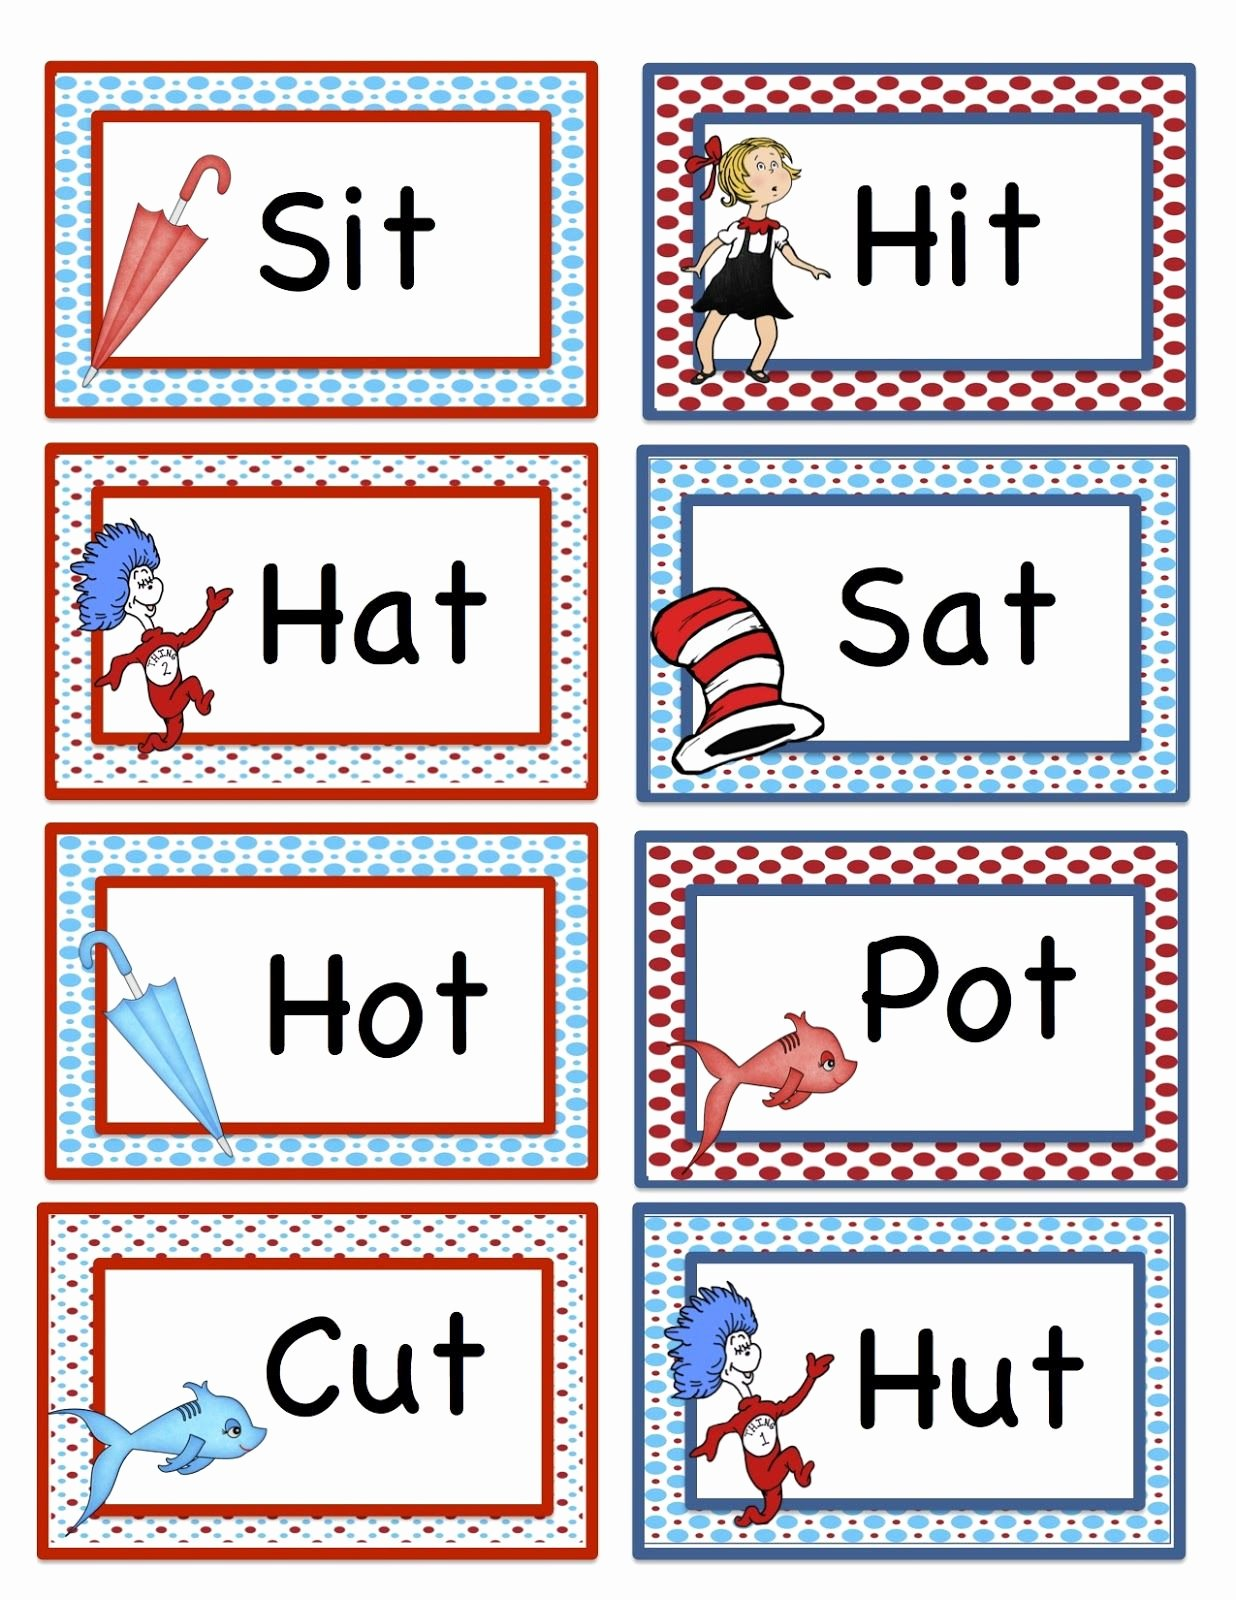 Dr Seuss Worksheets for Preschoolers New Dr Seuss Printables for Preschoolers Characters List